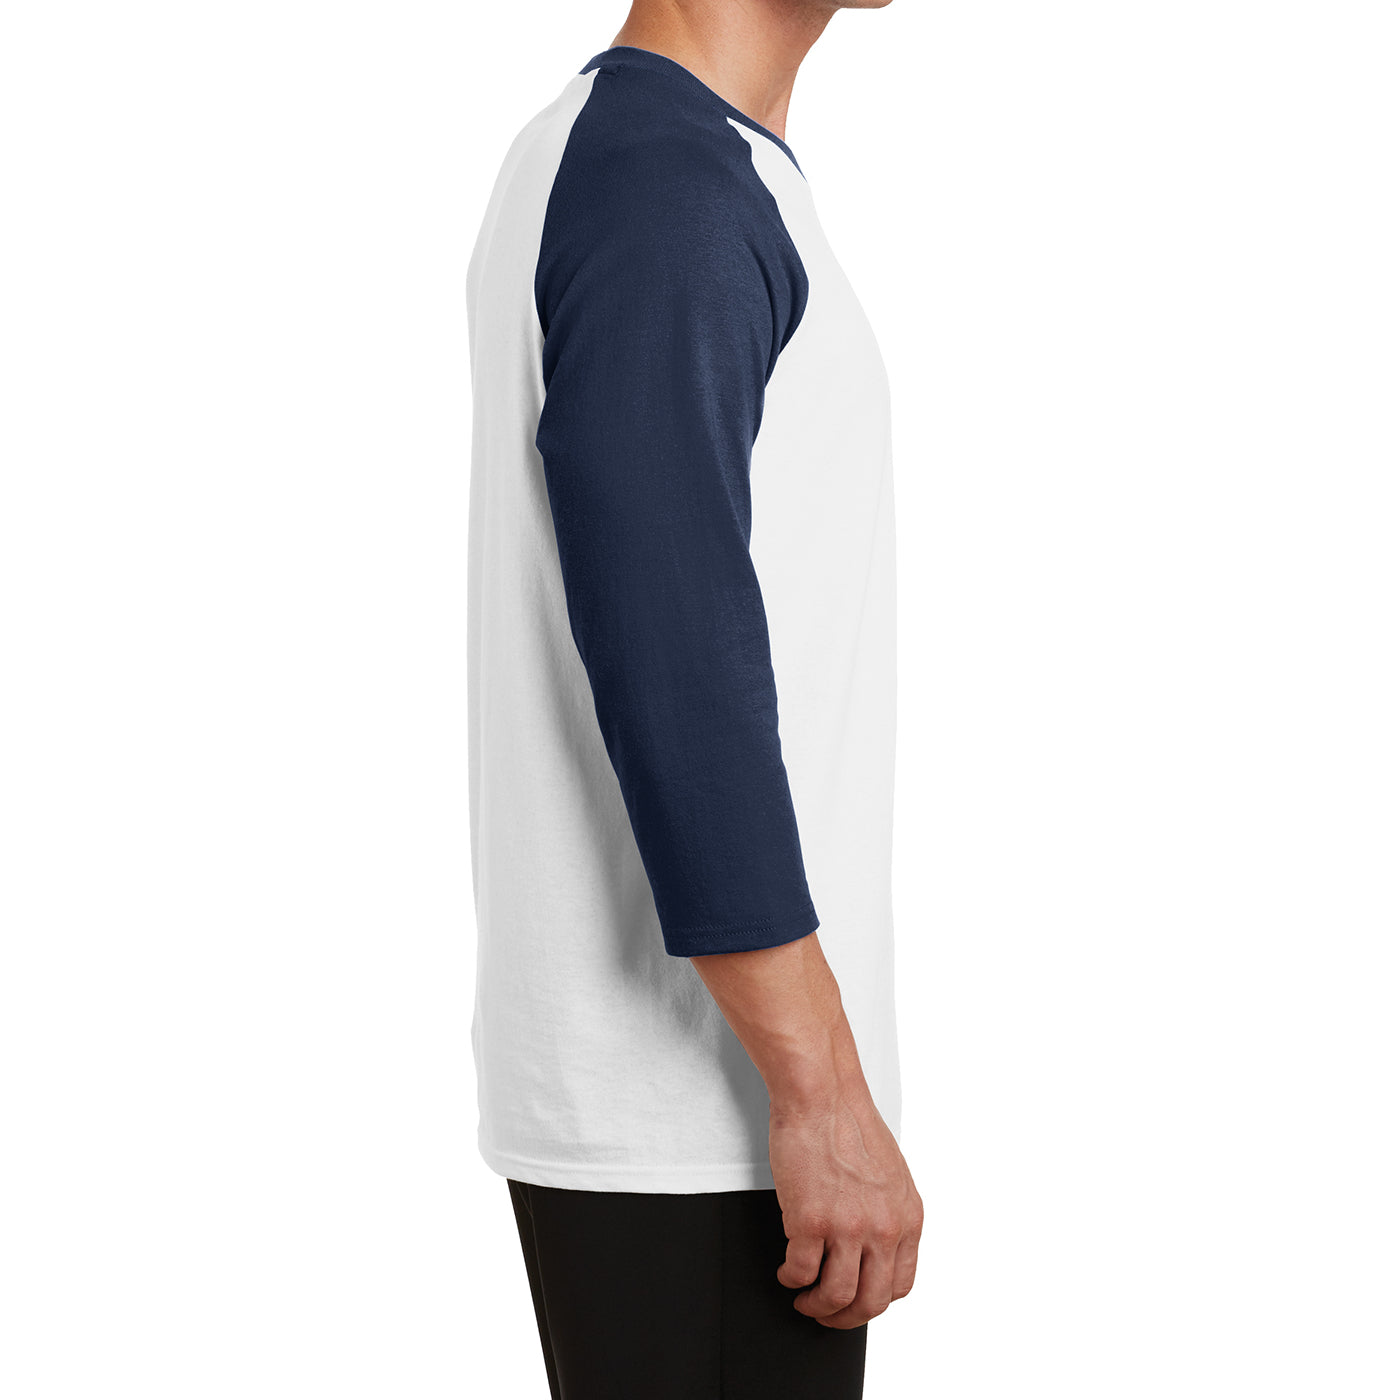 Men's Core Blend 3/4-Sleeve Raglan Tee - White/ Navy - Side